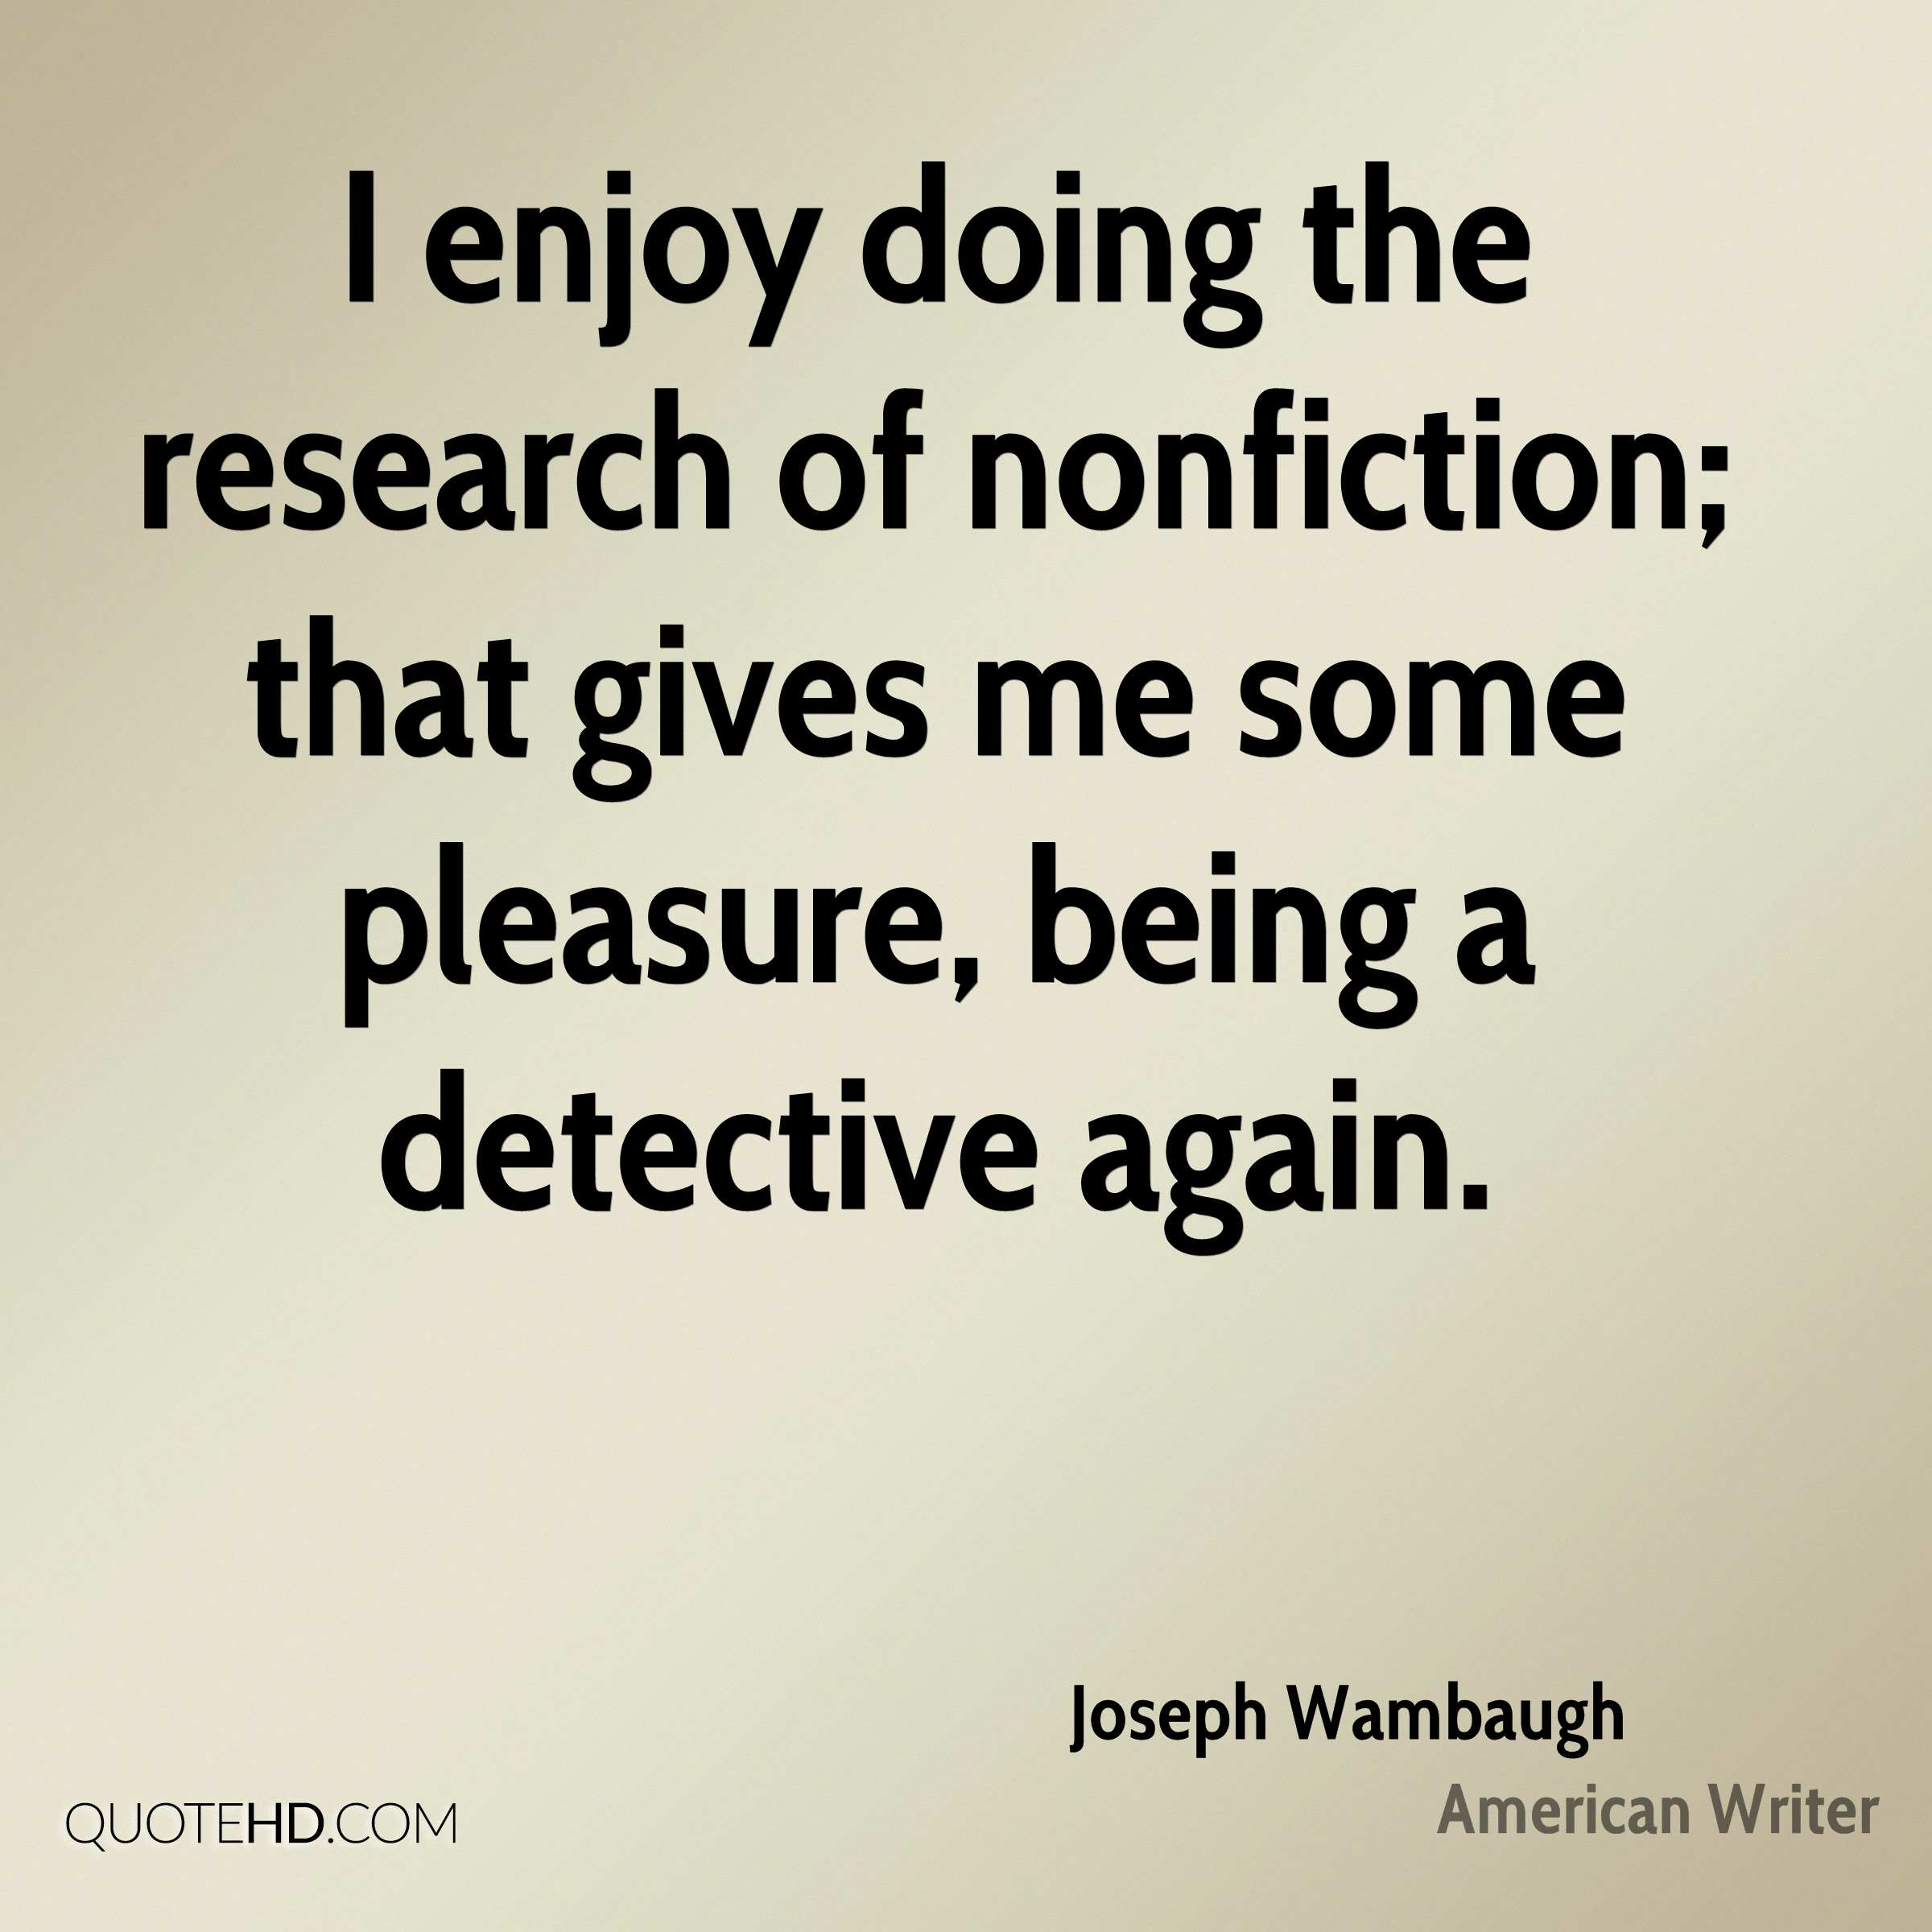 I enjoy doing the research of nonfiction; that gives me some pleasure, being a detective again.